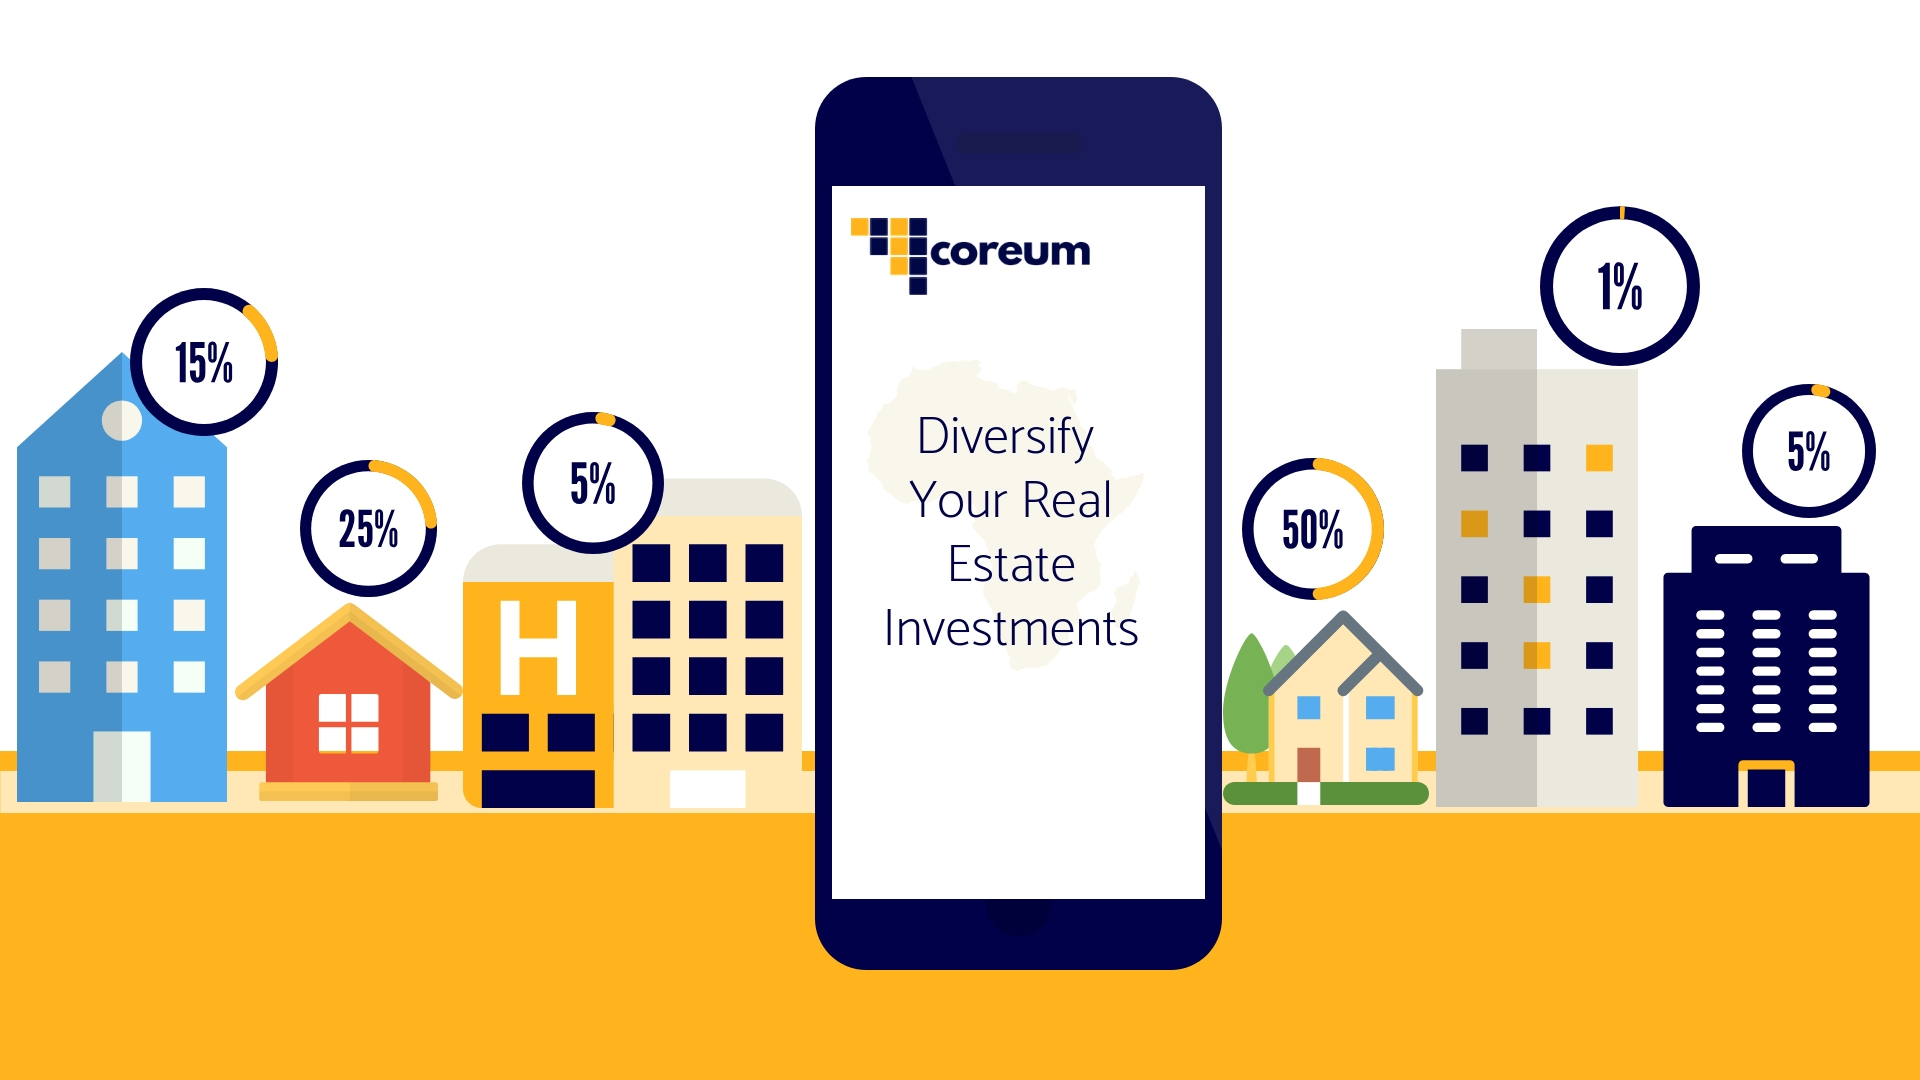 Coreum Review: A Simplified Real Estate Investing & Crowdfunding Platform